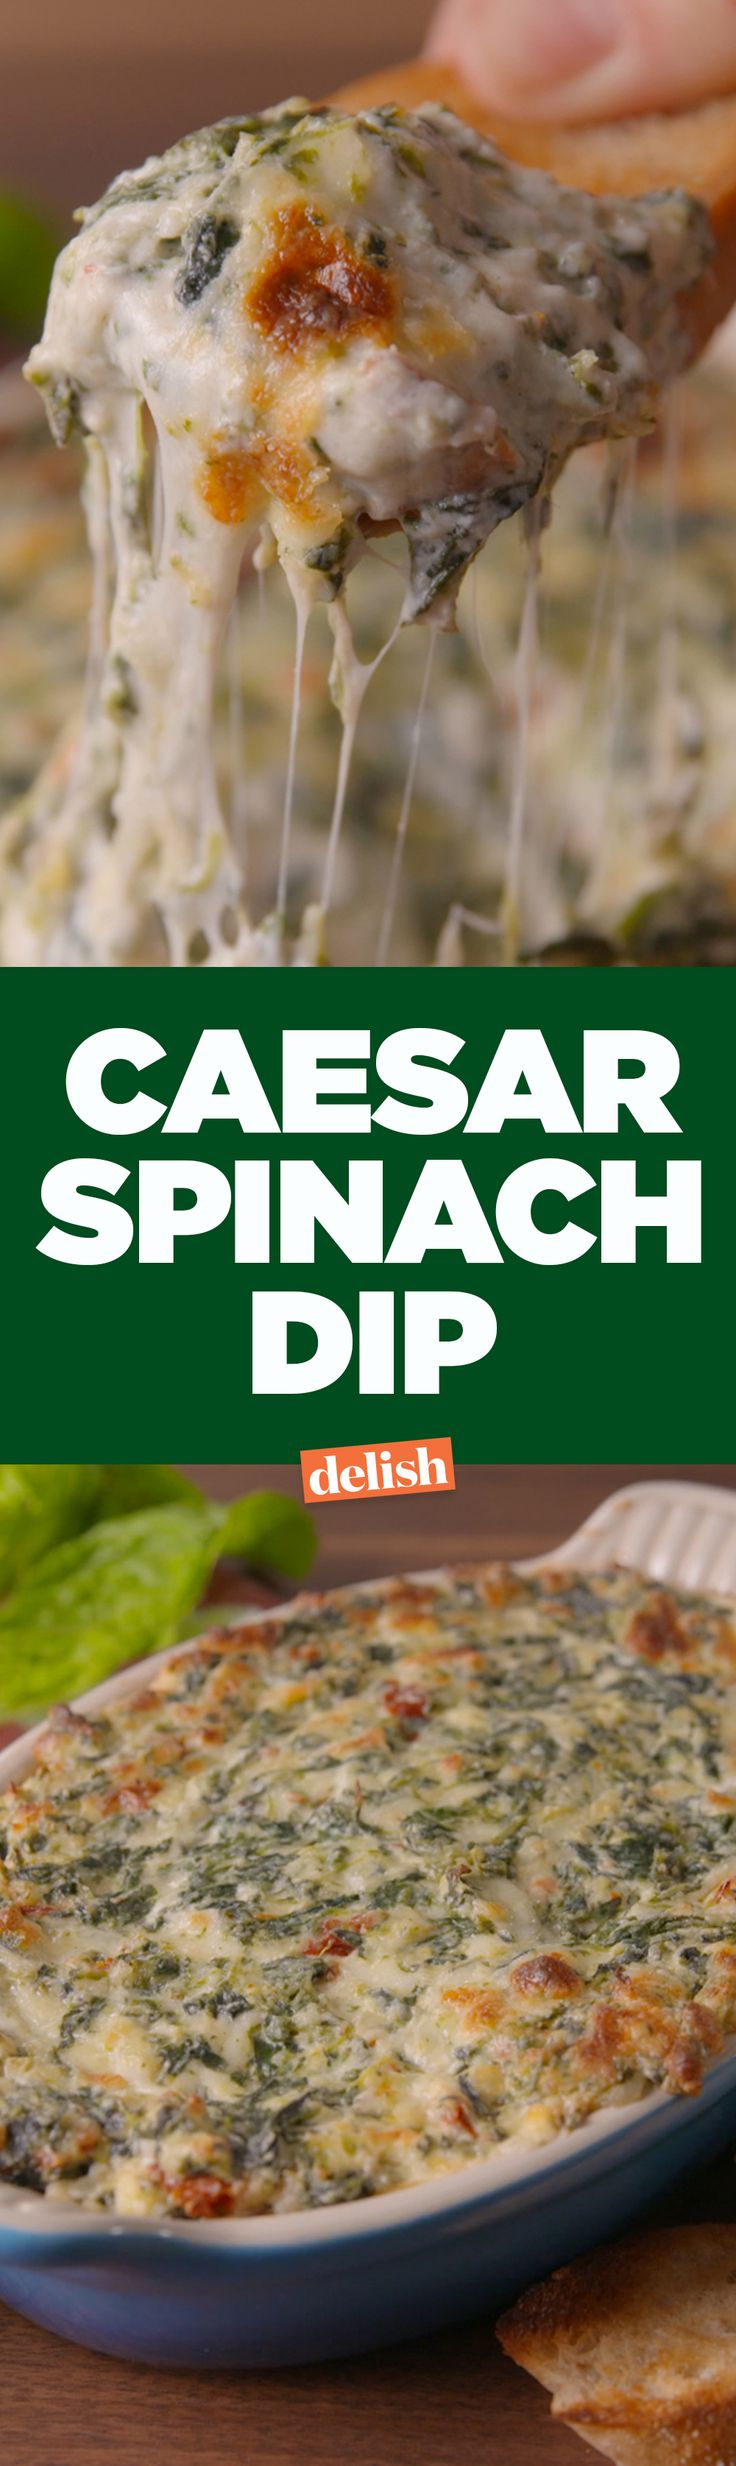 Caesar Spinach Dip will bring all your friends to the yard. Get the recipe on Delish.com.